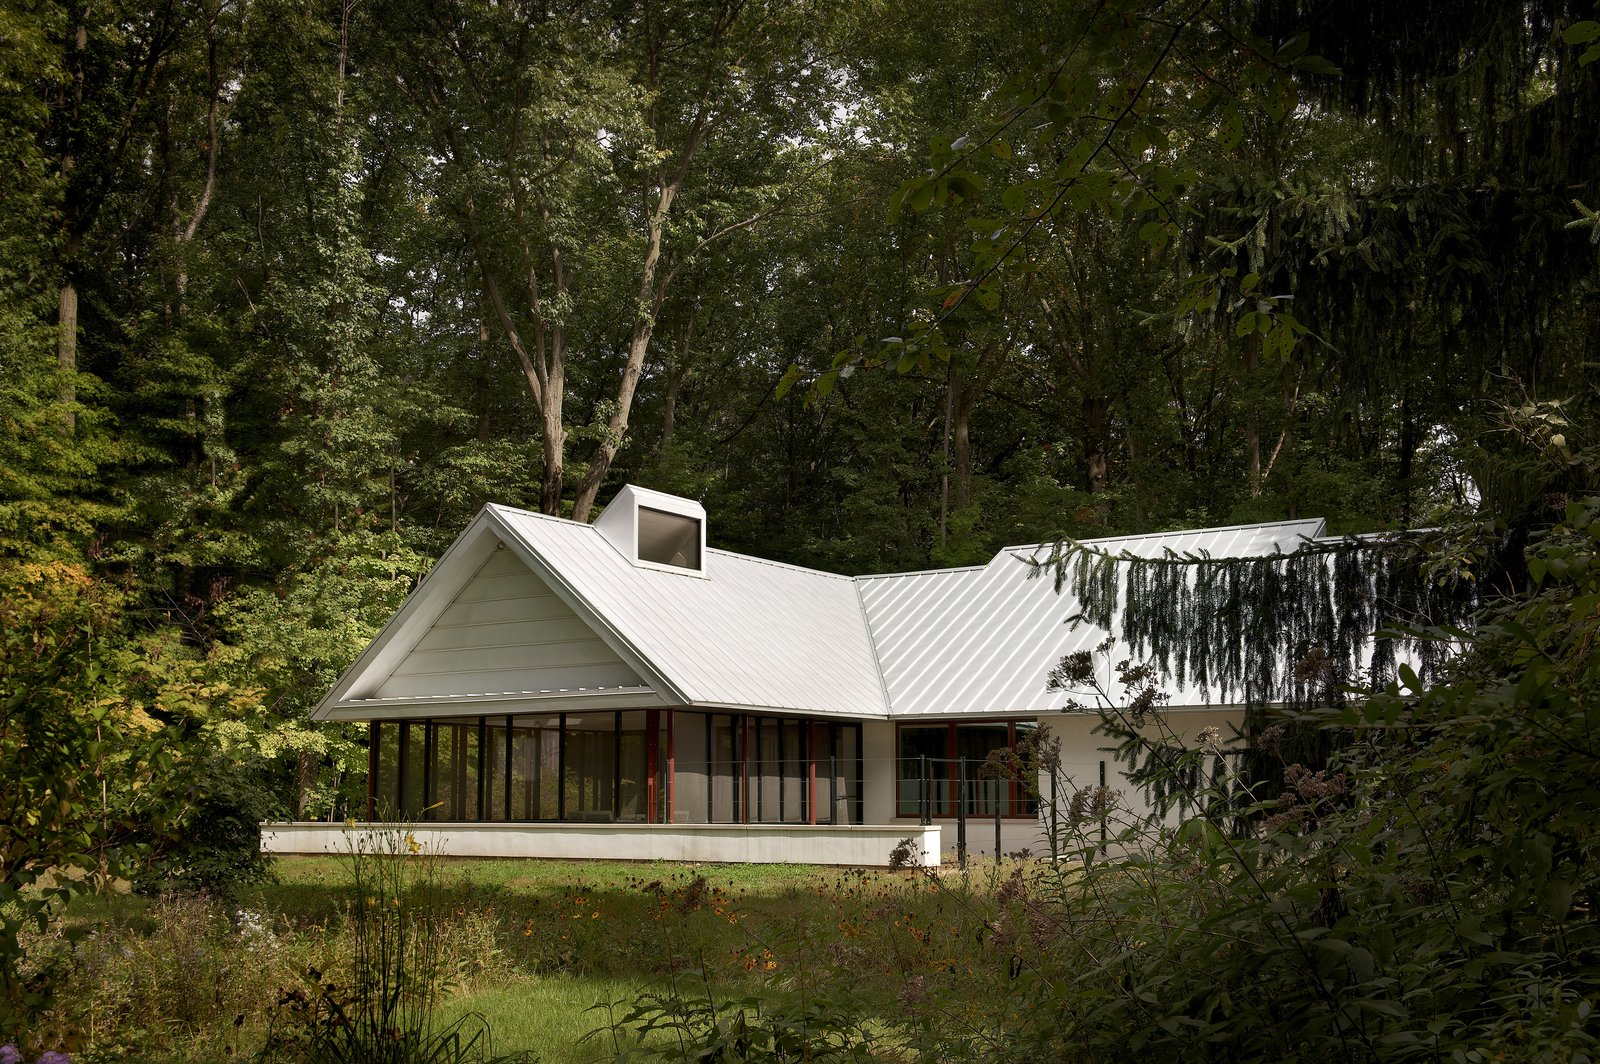 """Exterior, Farmhouse Building Type, House Building Type, Gable RoofLine, and Metal Roof Material """"When you're doing a second home, a lot of the character of the design is defined by what it isn't,"""" says architect Greg Howe, as a way of explaining the minimalistic approach that was taken on this Michigan weekend home. """"If you think of it as cold, you have to remember, the setting, and accessing nature, is the point.""""  Photo 1 of 8 in Modern Cottage Renovation in Michigan"""